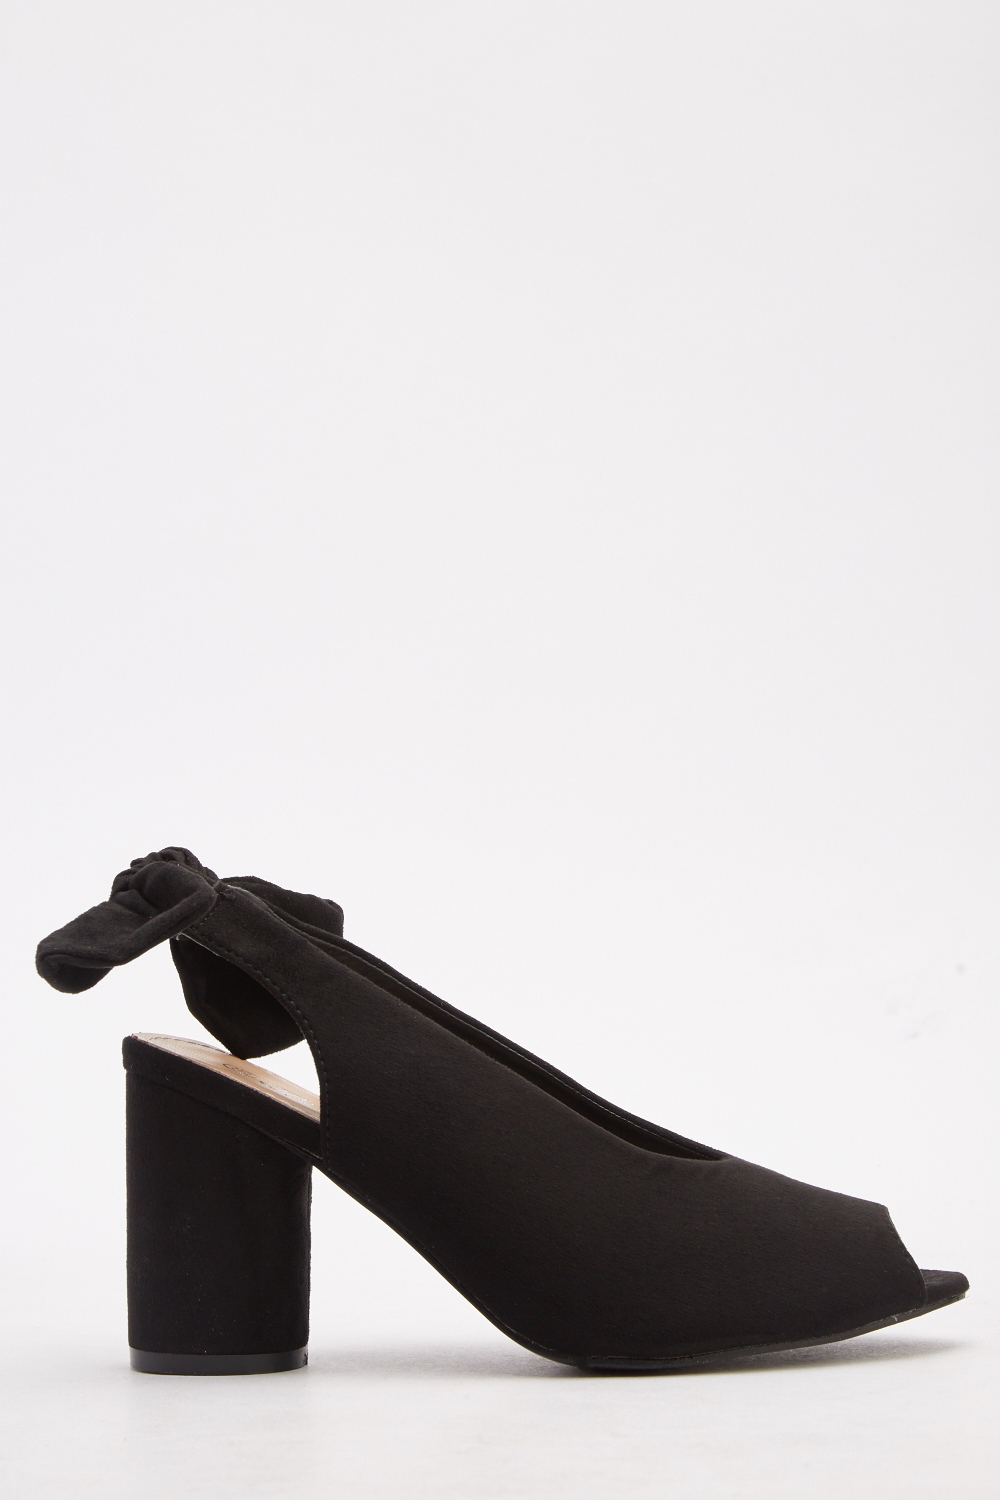 c4de76682b0 Block Heeled Slingback Open Toe Shoes - Black - Just £5